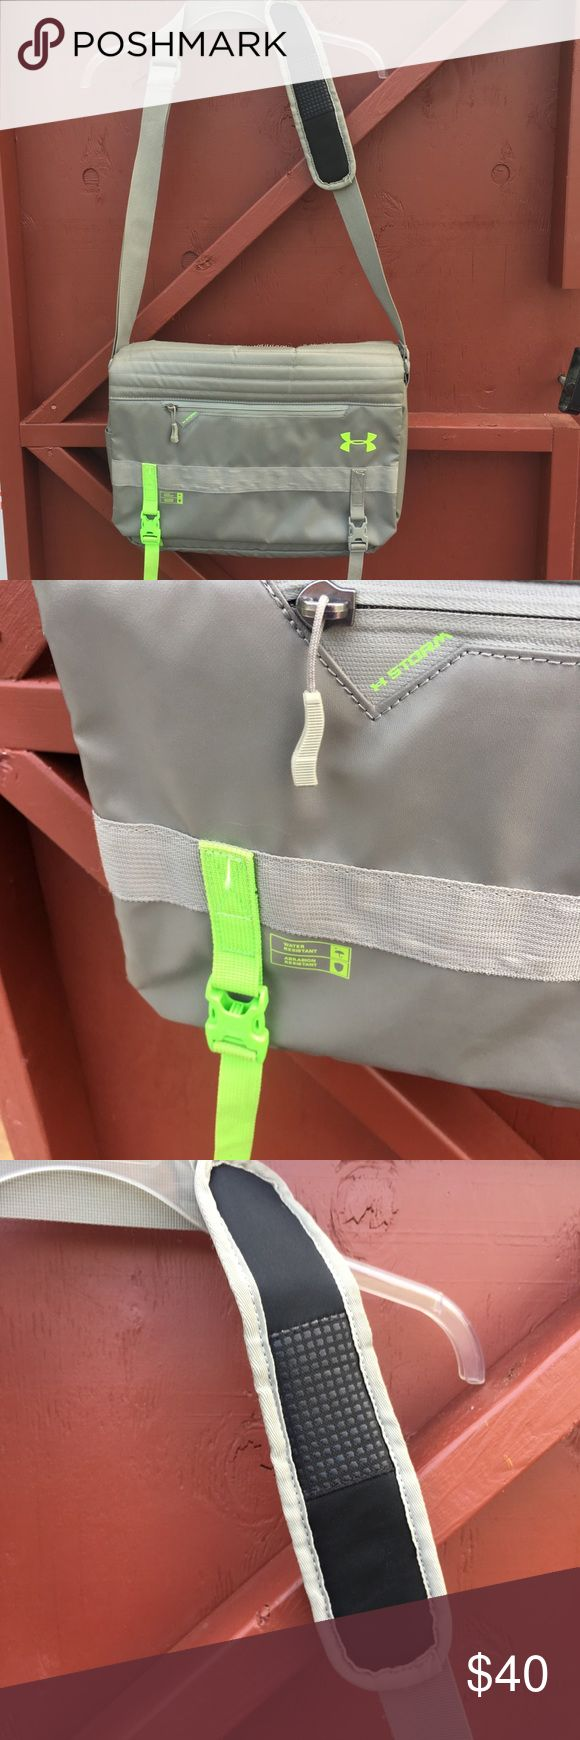 Under Armor crossbody shoulder backpack laptop cas Perfect for back to school! Lovely under armor cross body over the shoulder backpack, satchel, laptop case. Several pockets to put everything you need for school. Great gray and lime green color. Overall, in clean, very good condition with a few minor spots from use. Under Armour Other